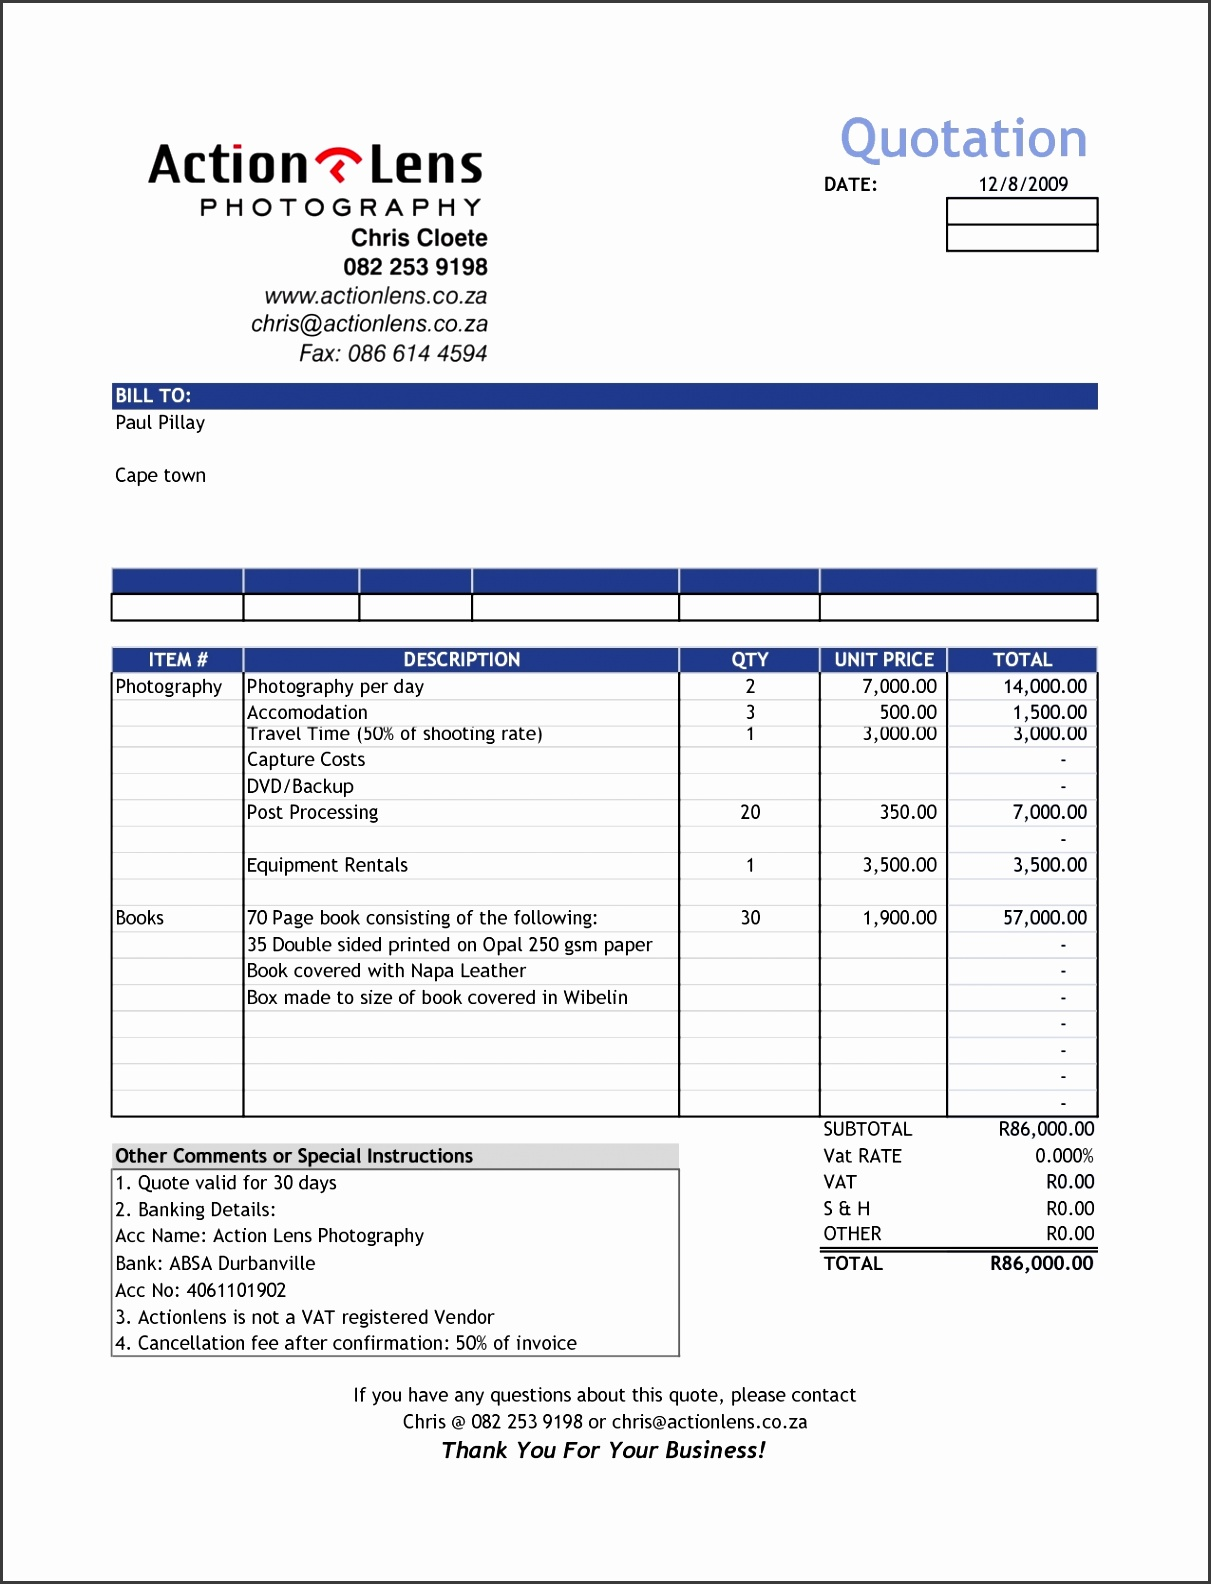 Sale Invoice Format In Excel